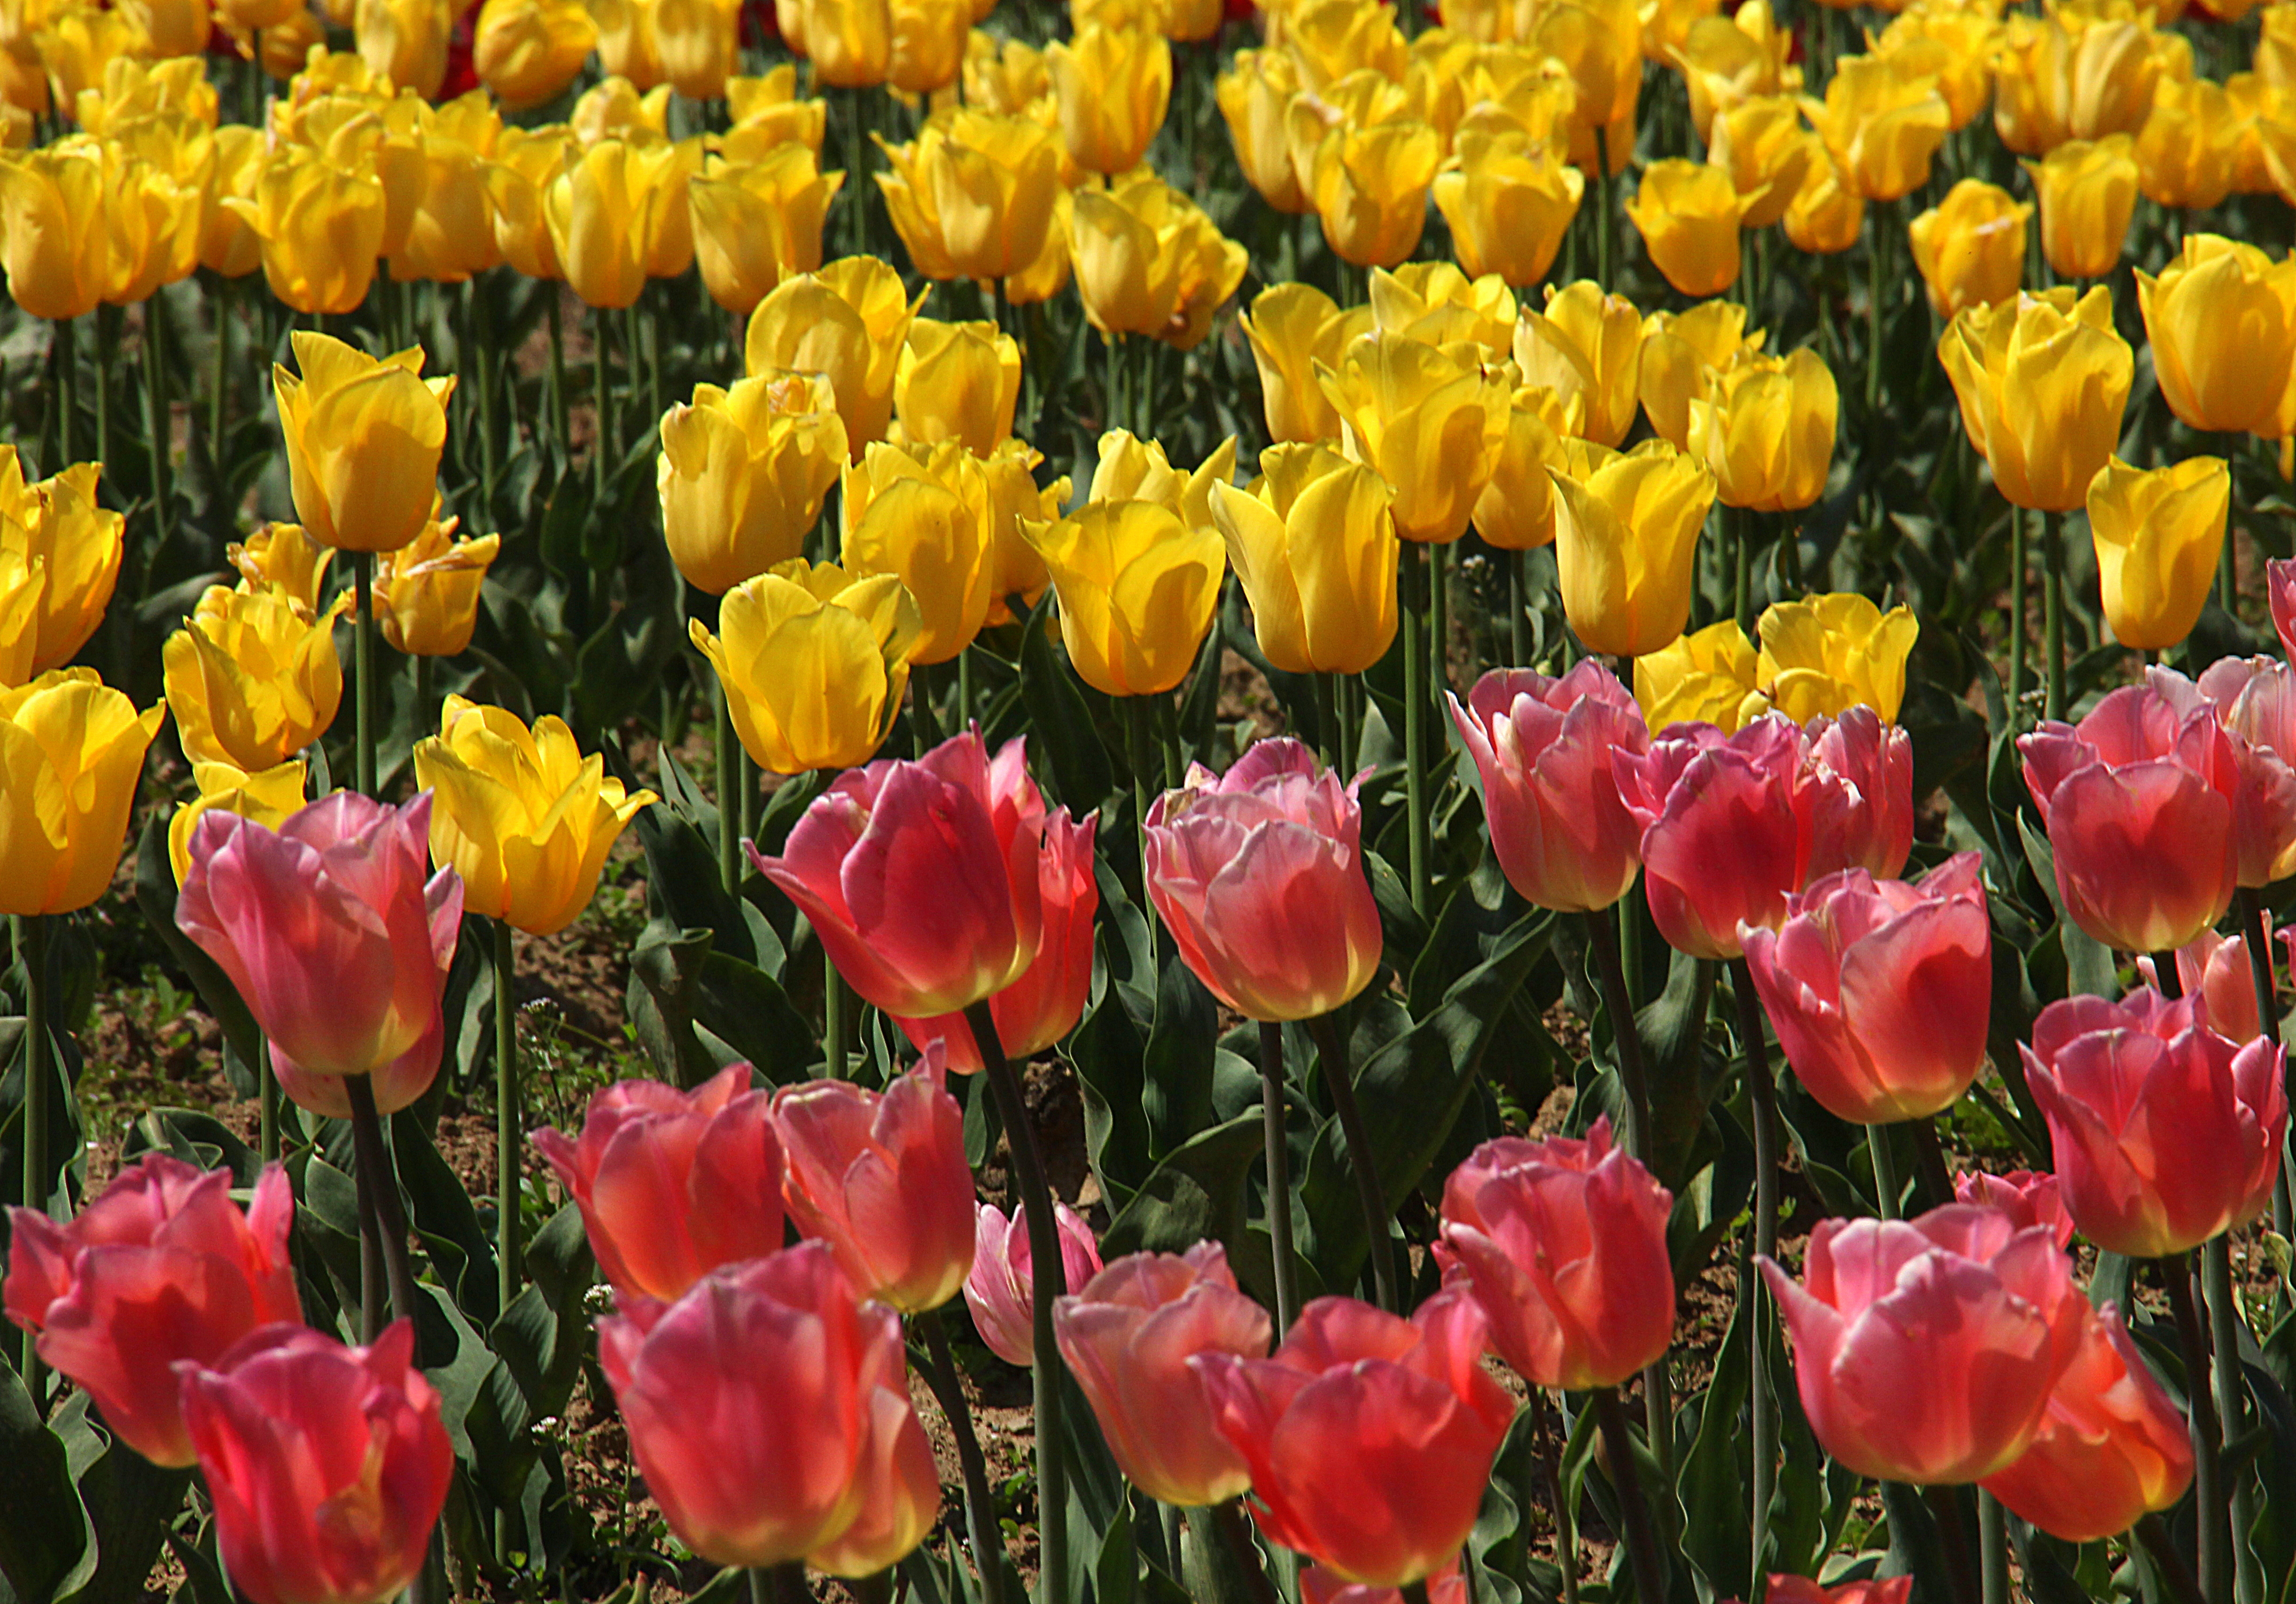 the yellow and pink flowers at srinagar tulip festival